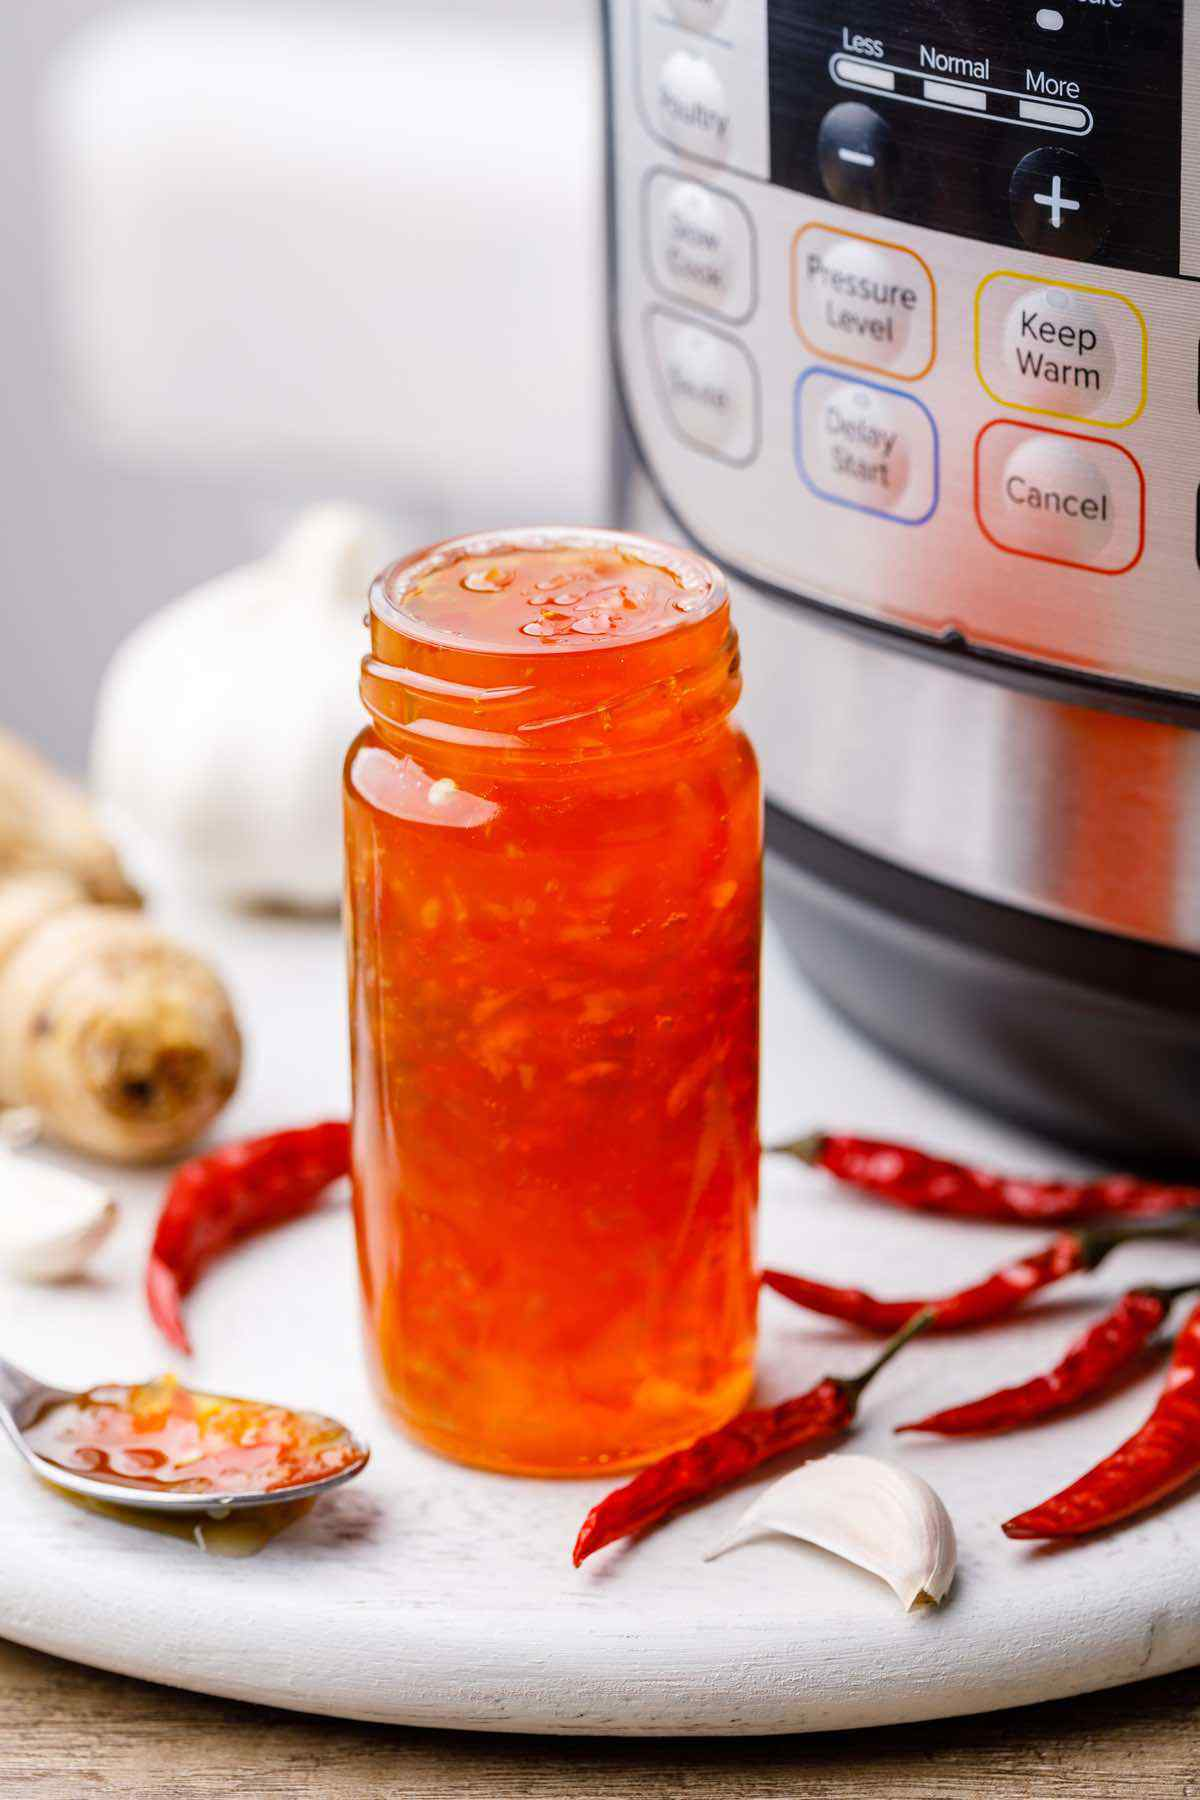 Instant Pot Sweet Chili Sauce